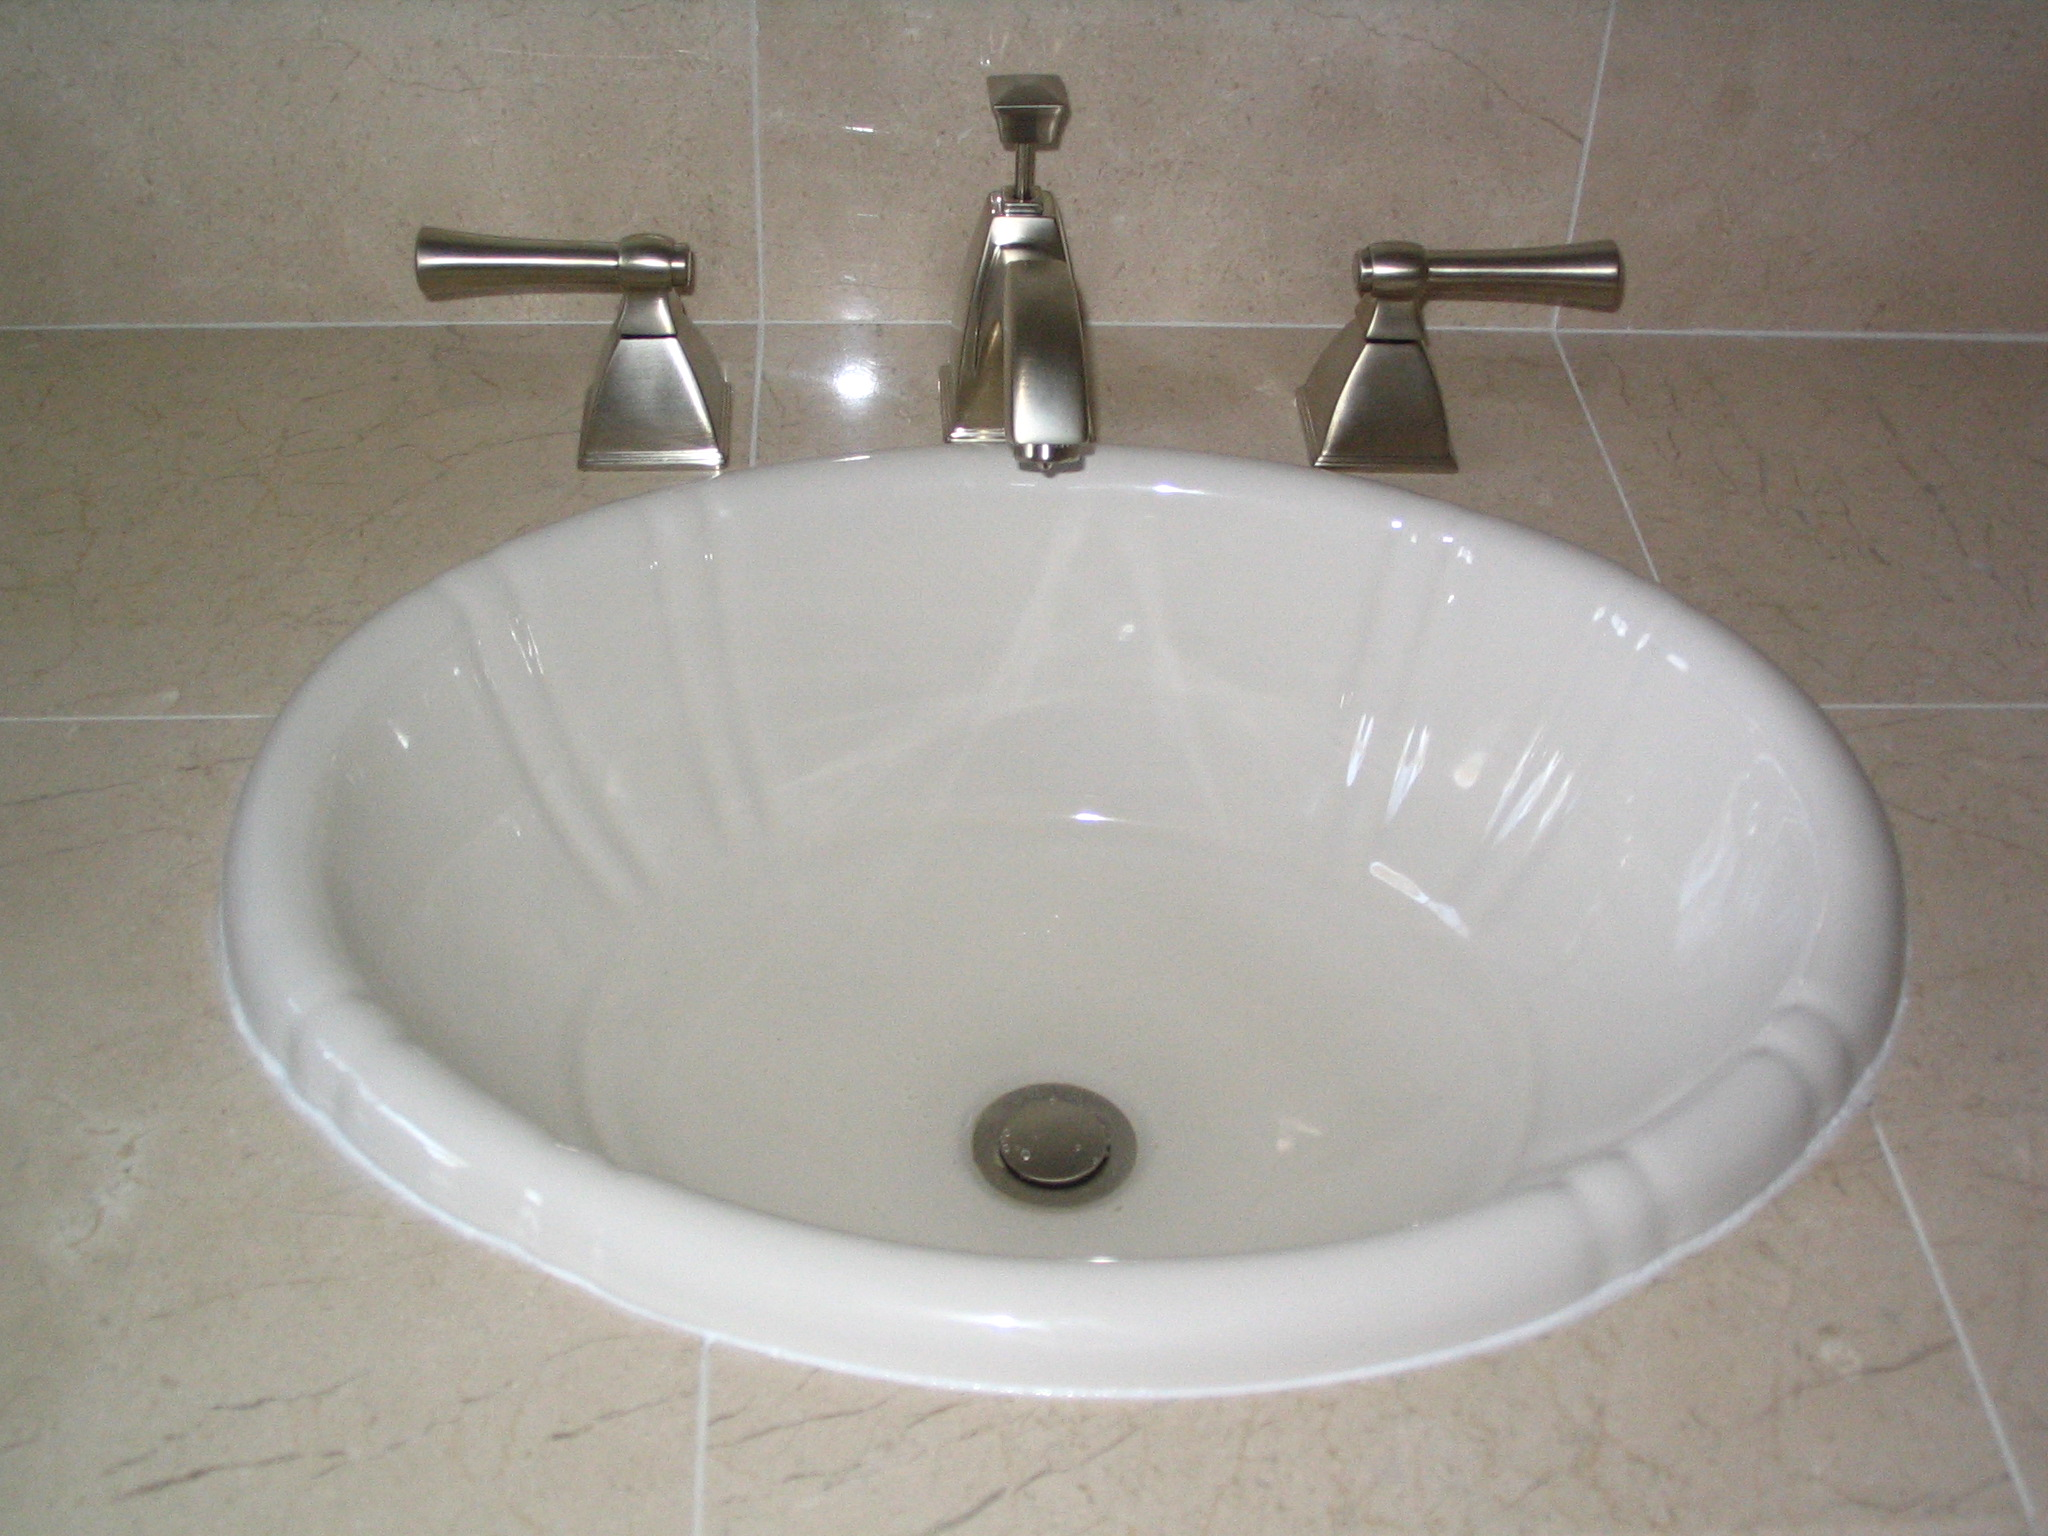 Faucet For Bathroom Sink : INSTALLING SINK FAUCETS - Faucets